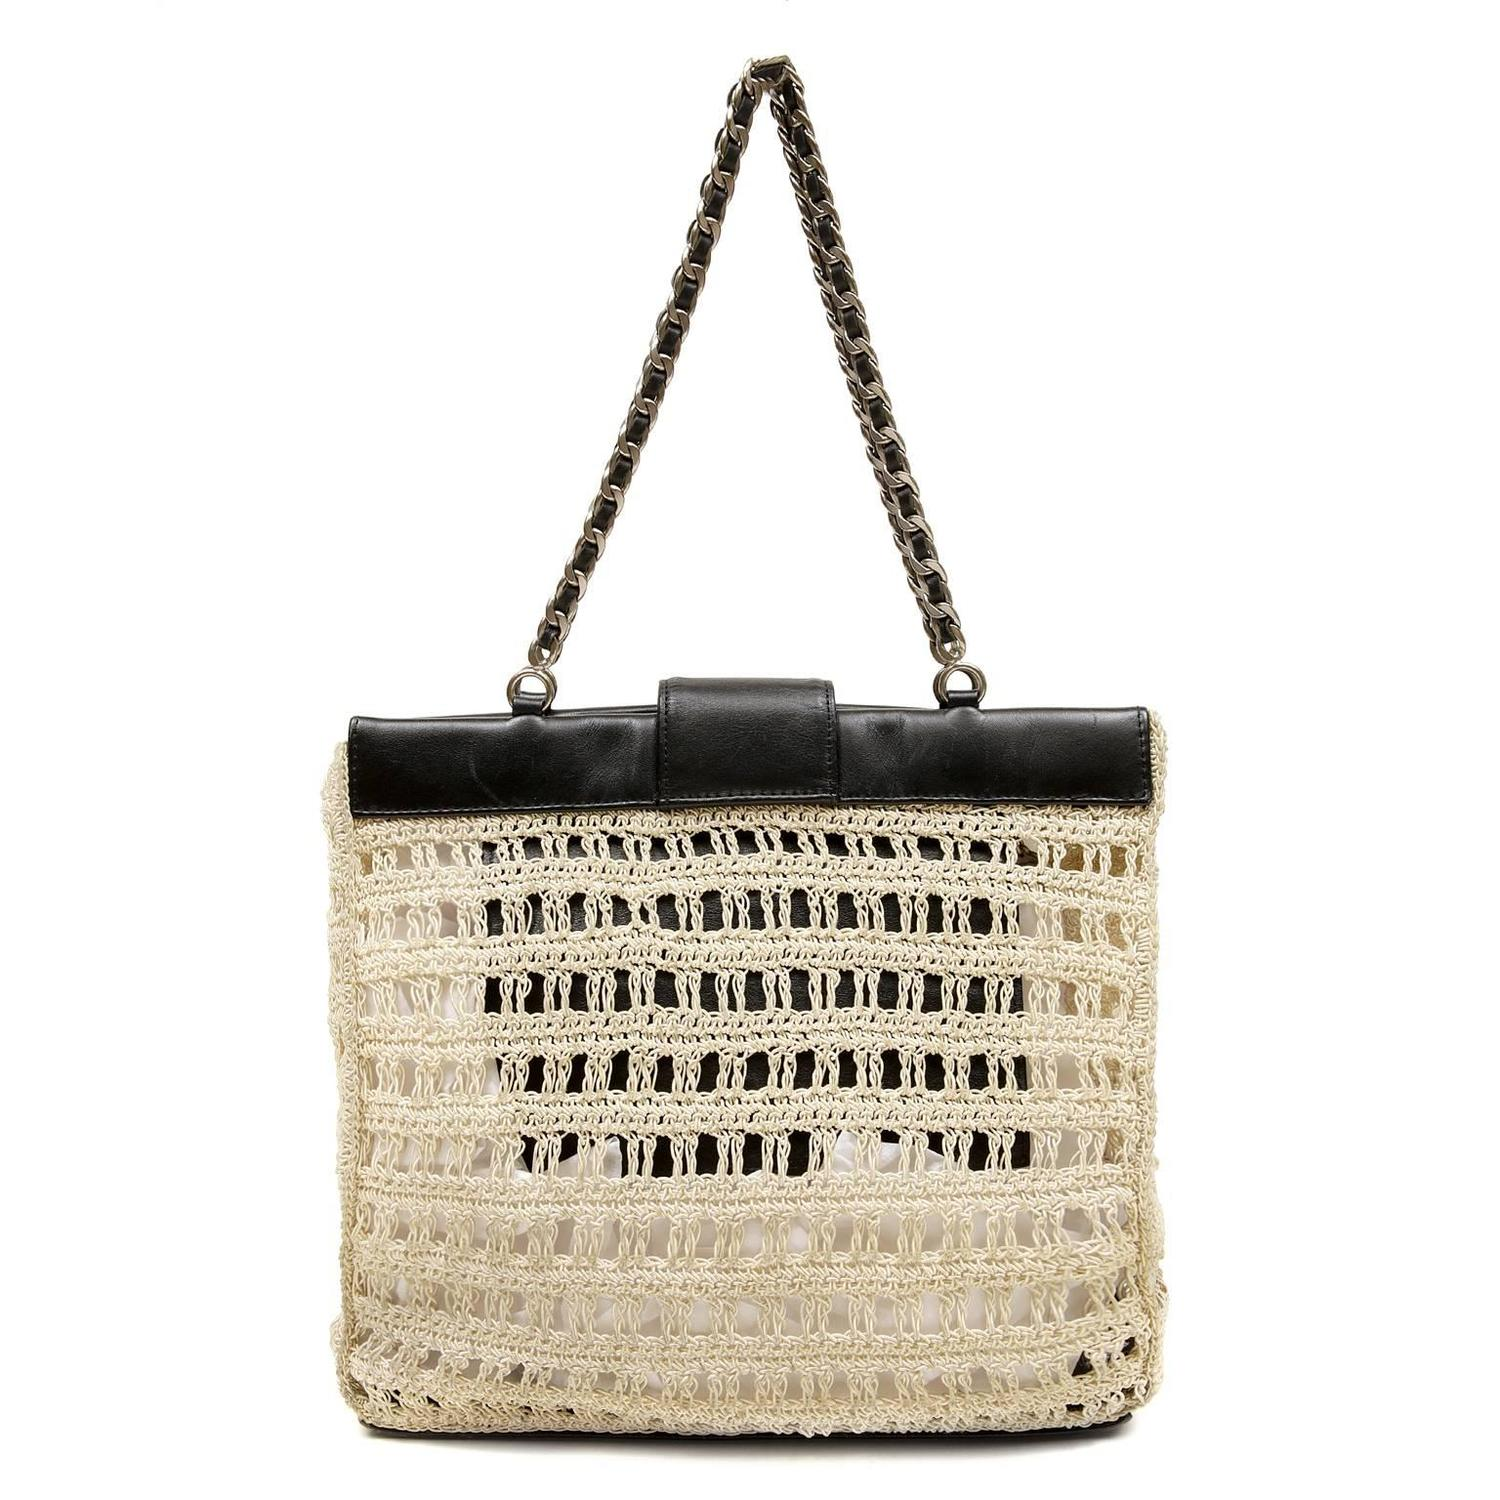 Leather Crochet Bag : Chanel Beige Crocheted and Black Leather Tote Bag For Sale at 1stdibs